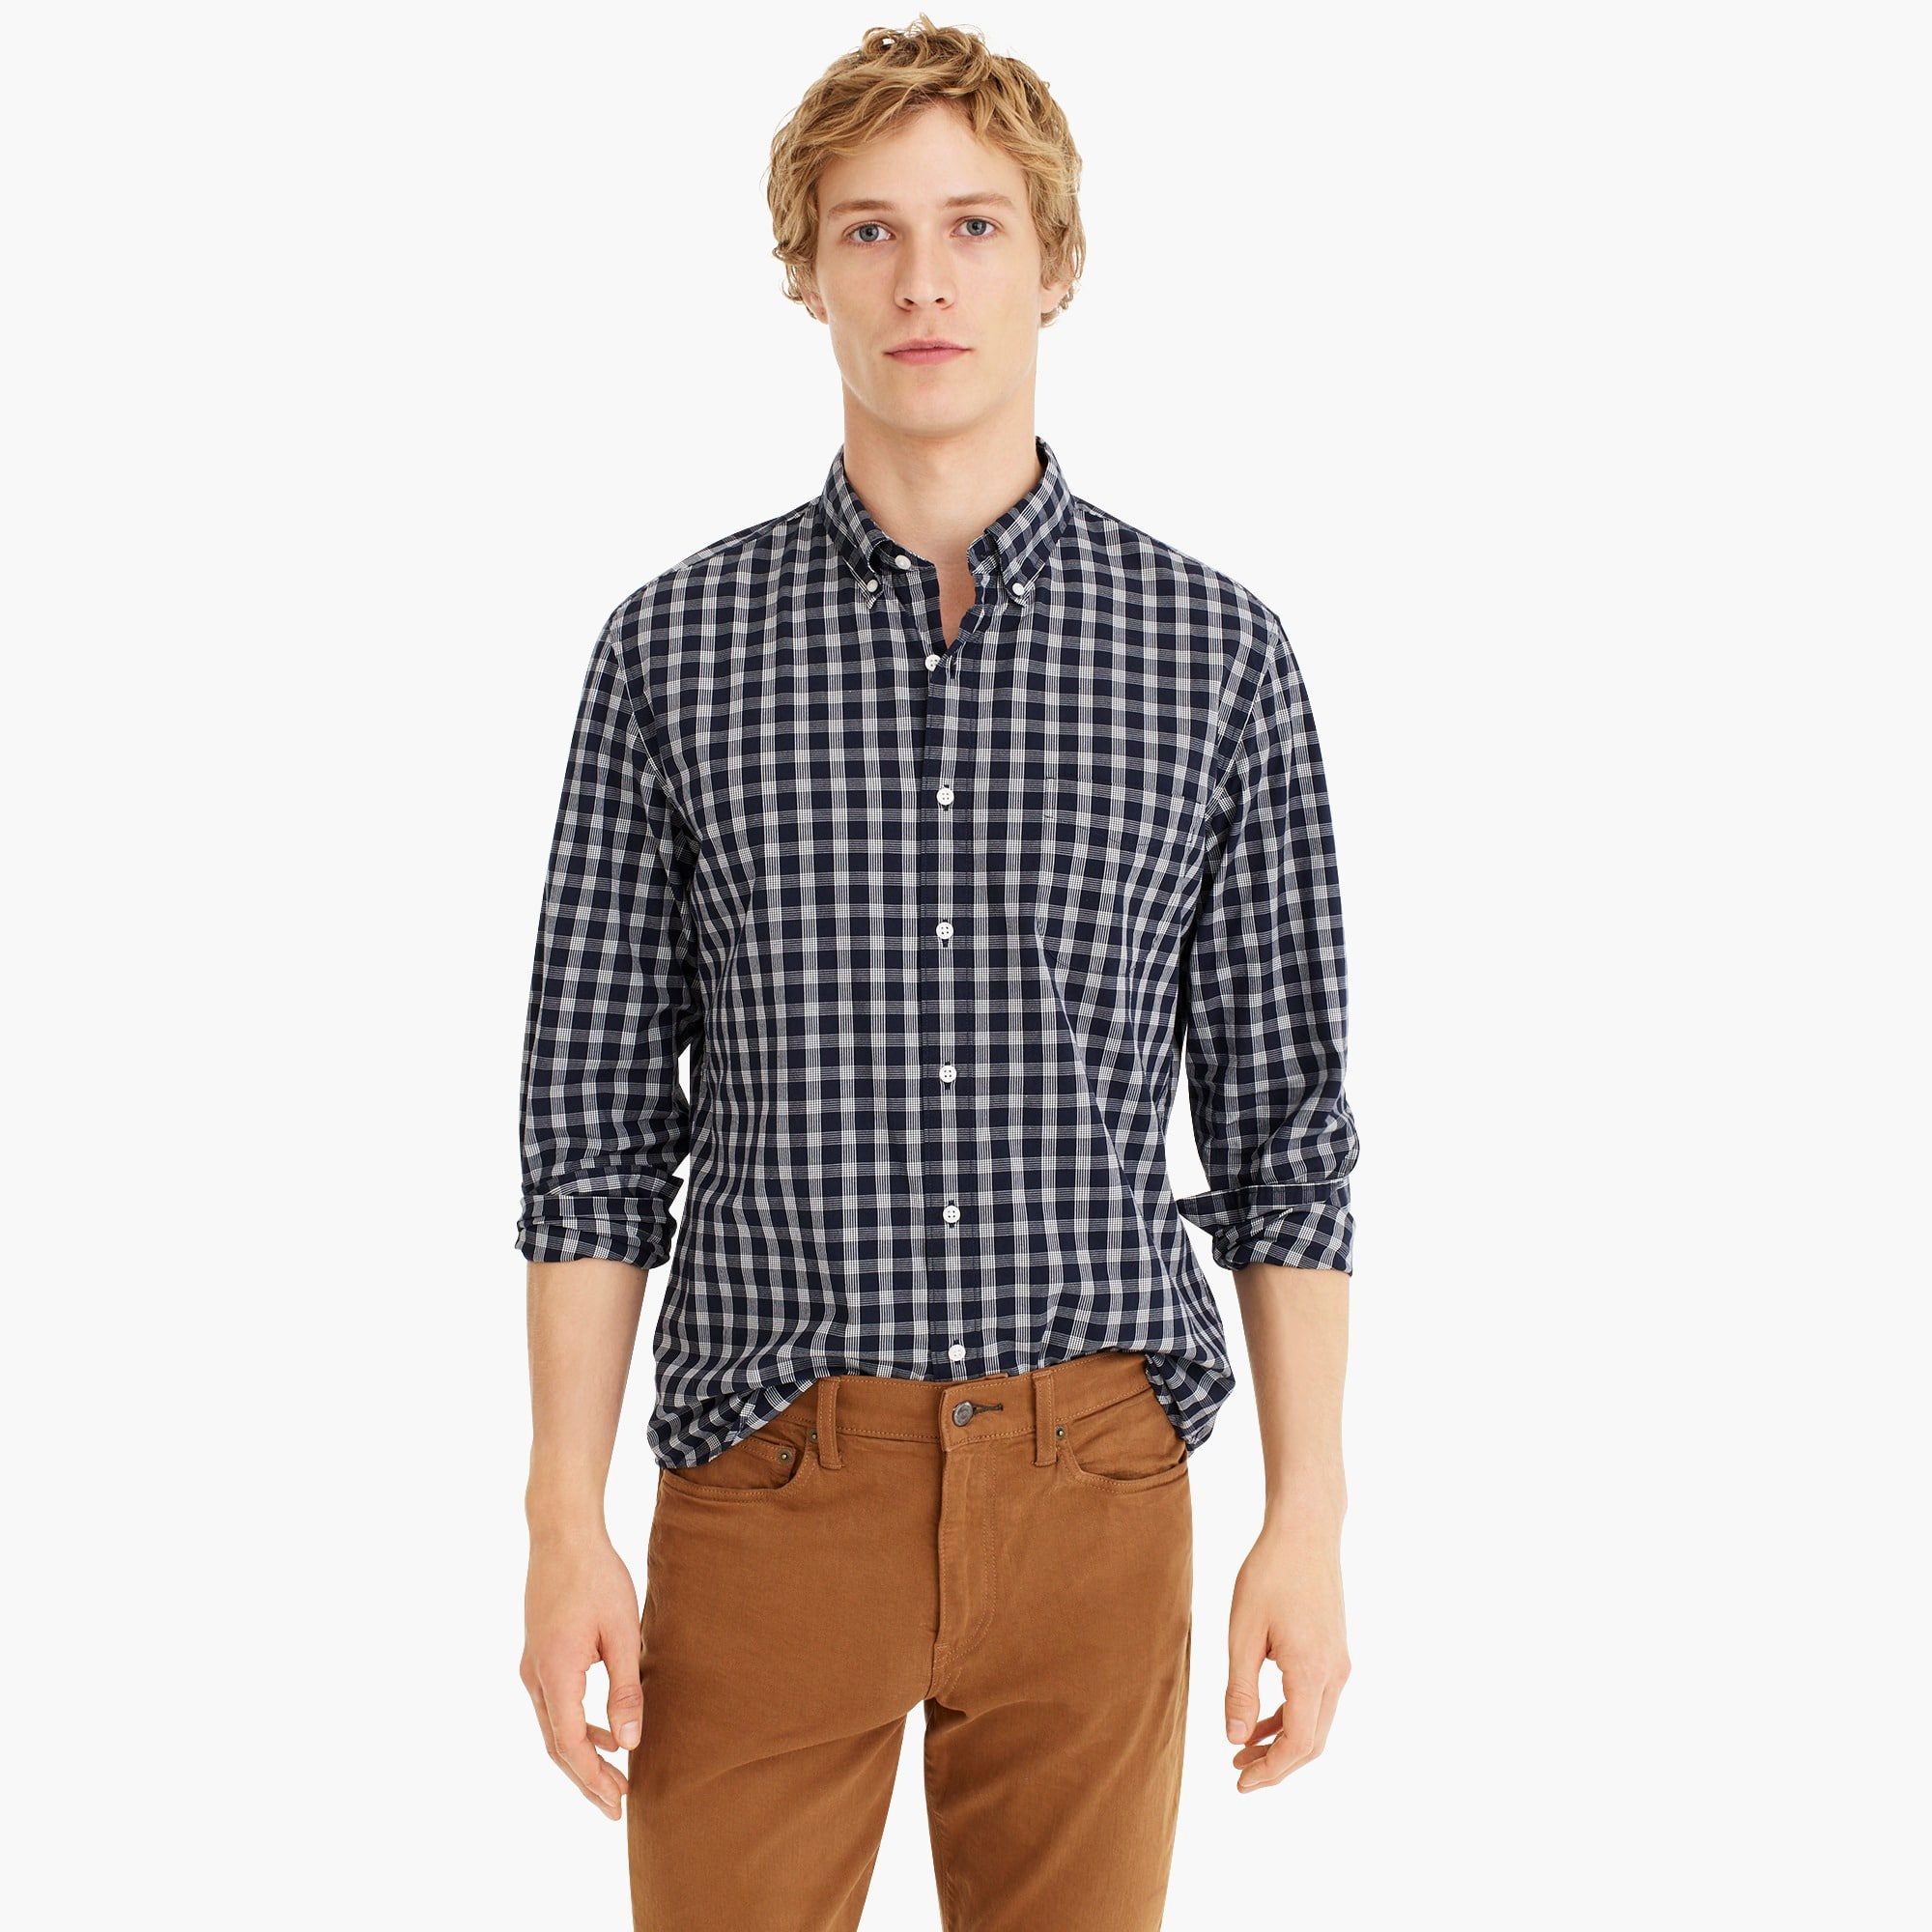 Stretch Secret Wash shirt in heathered glen plaid